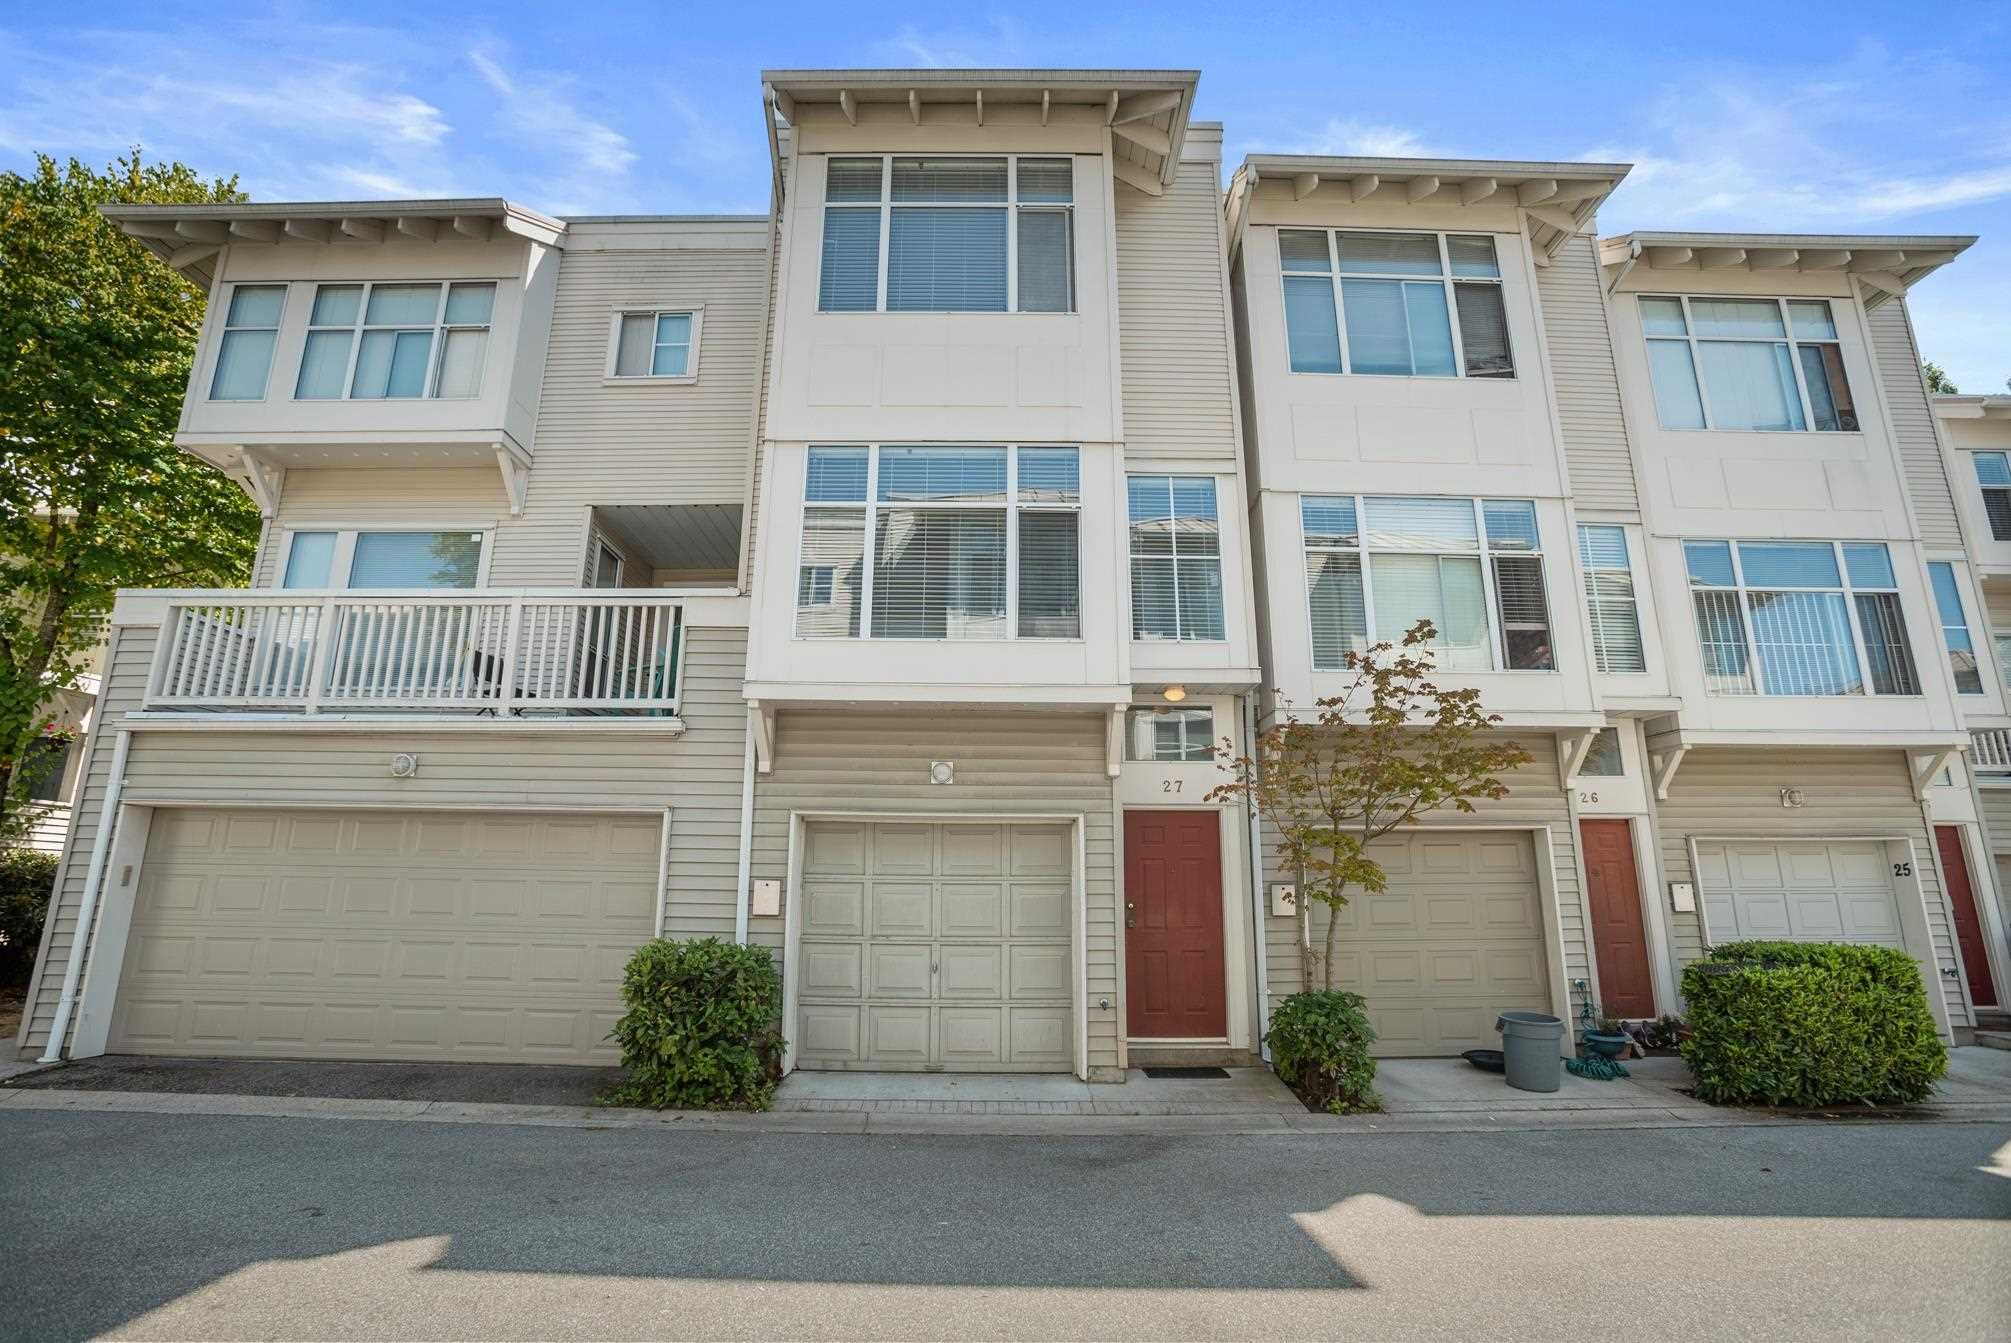 Main Photo: 27 12920 JACK BELL Drive in Richmond: East Cambie Townhouse for sale : MLS®# R2605416